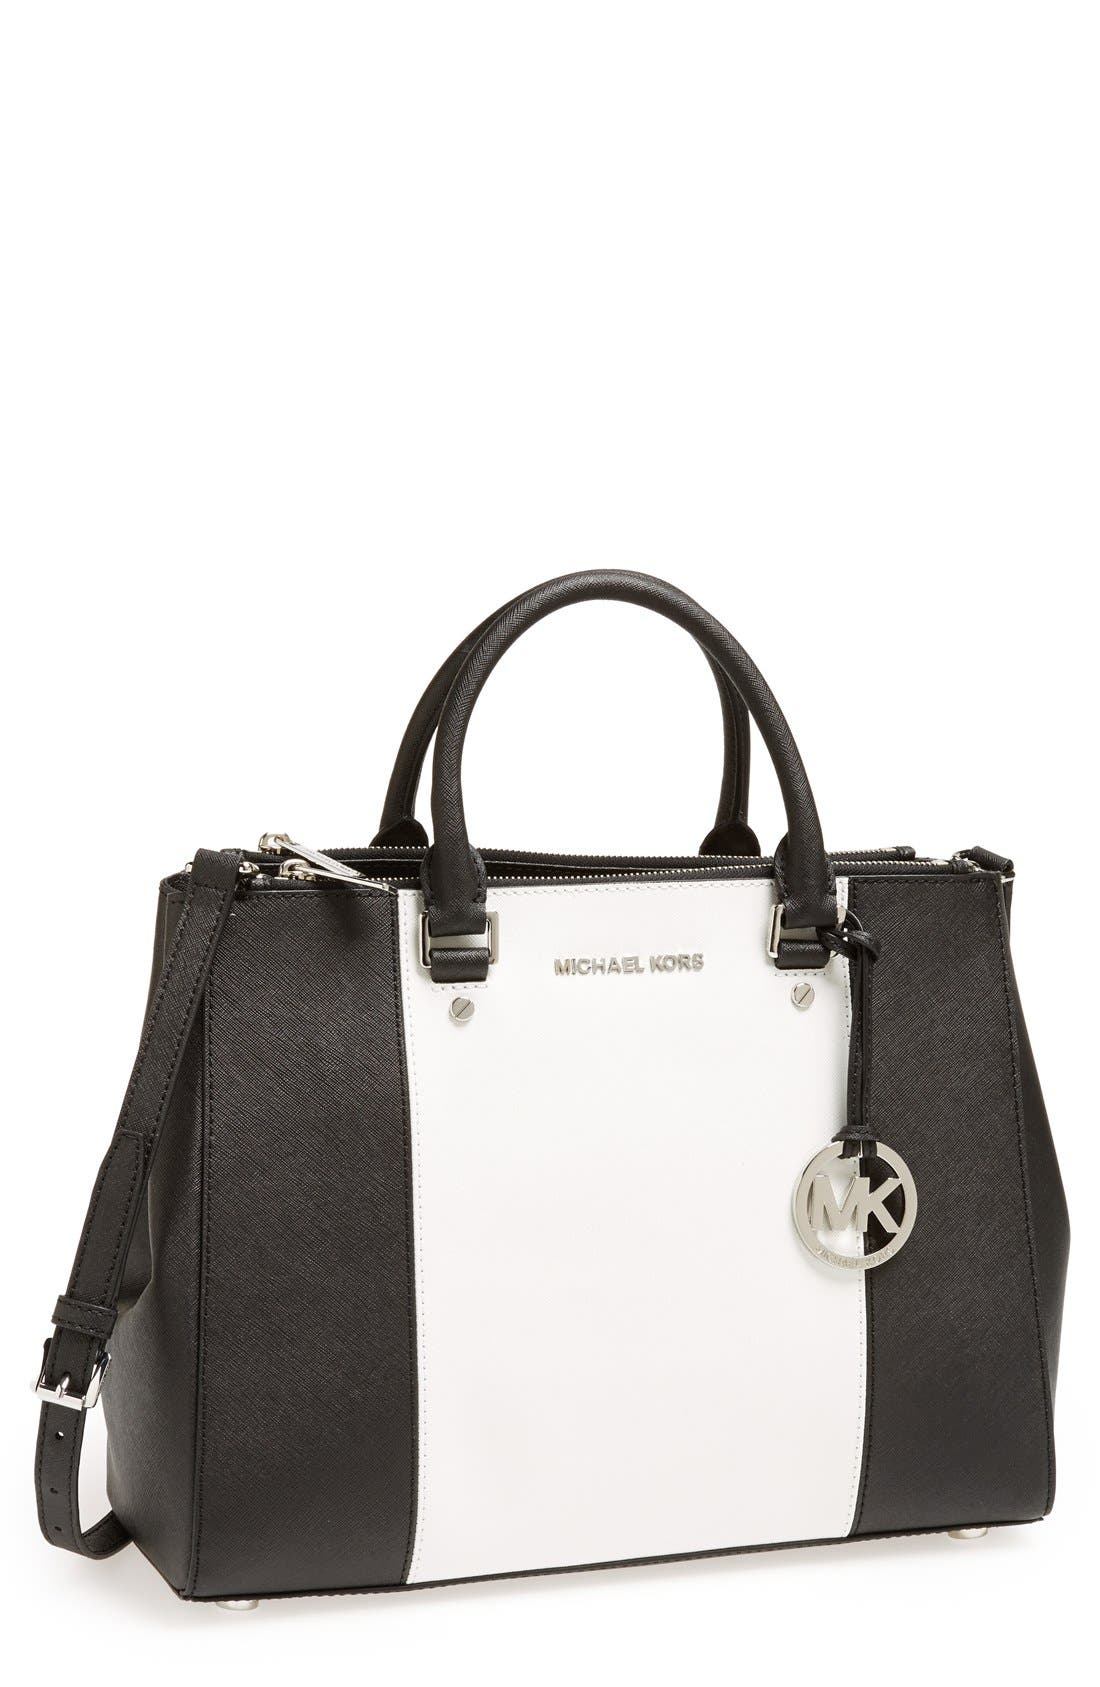 Alternate Image 1 Selected - MICHAEL Michael Kors 'Large Sutton Center Stripe' Saffiano Leather Tote